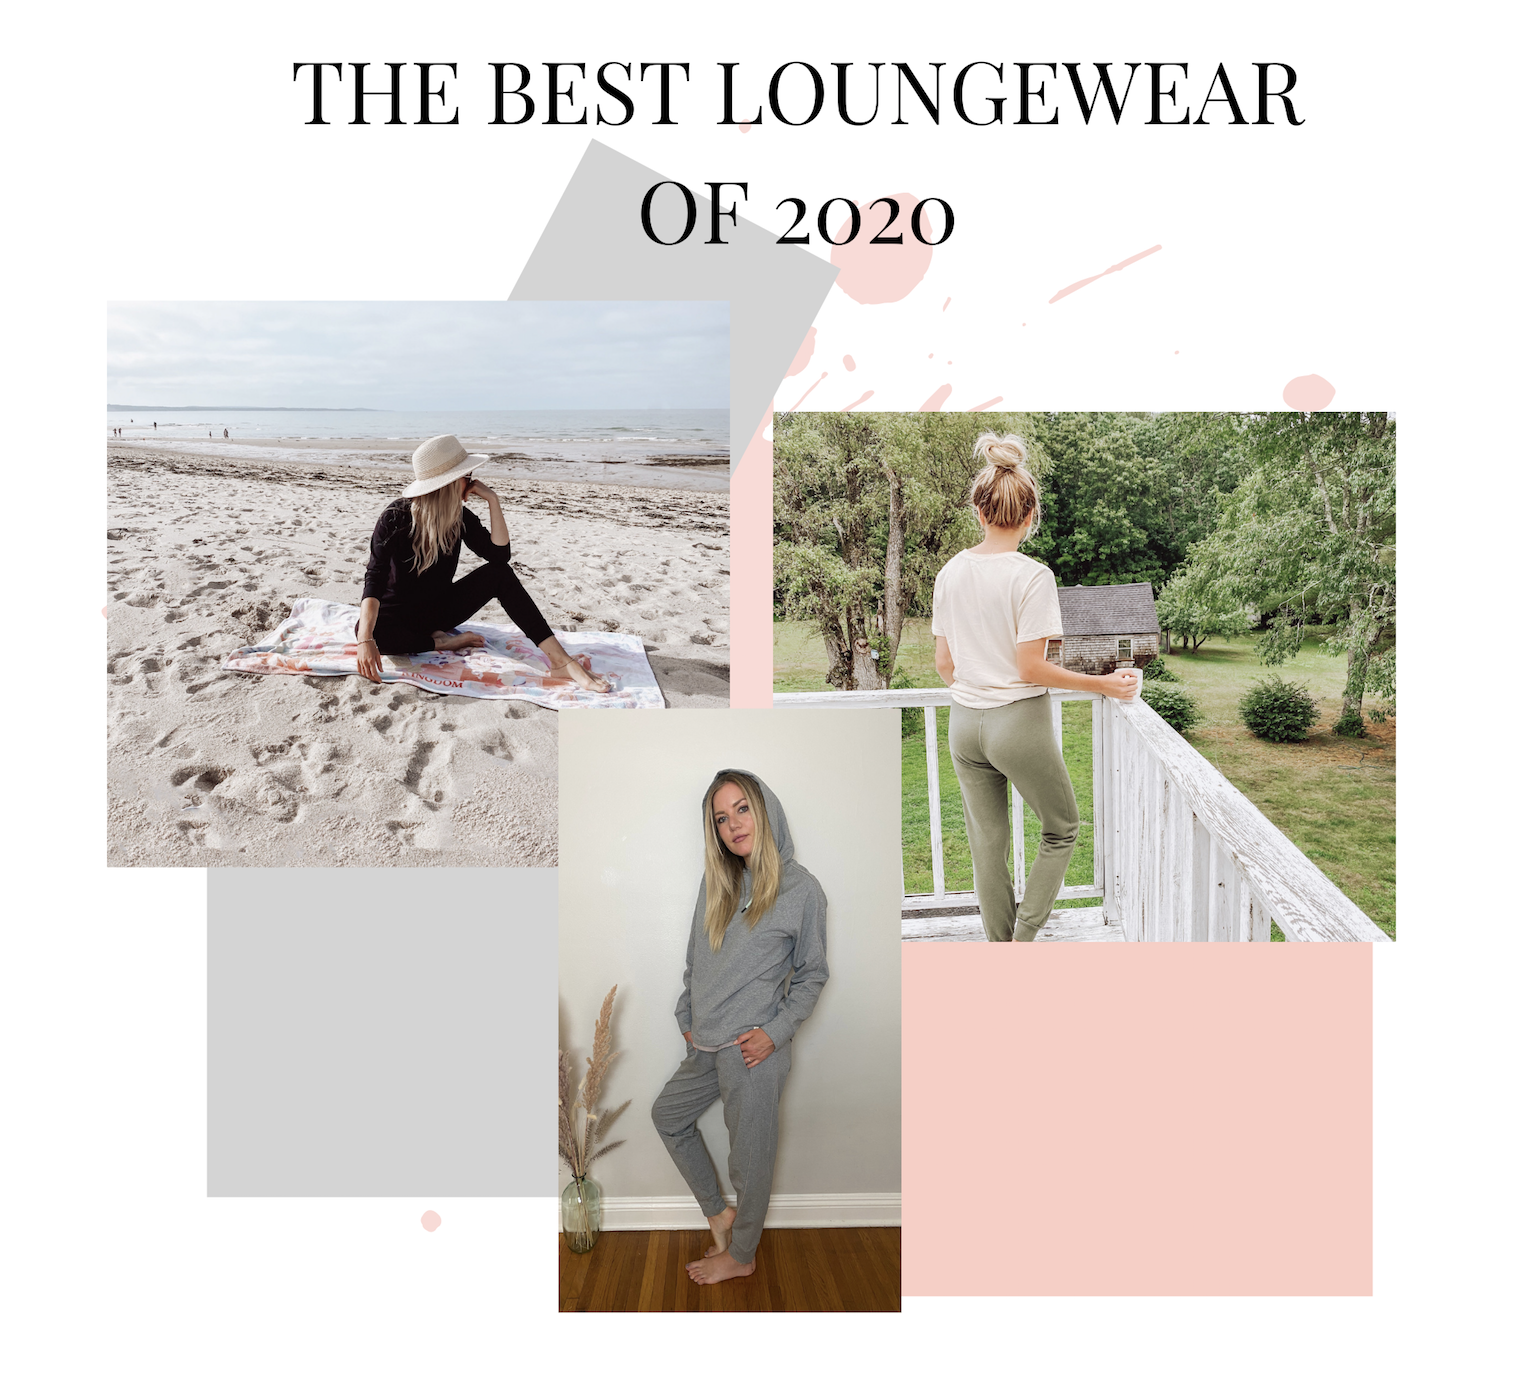 Best Loungewear of 2020